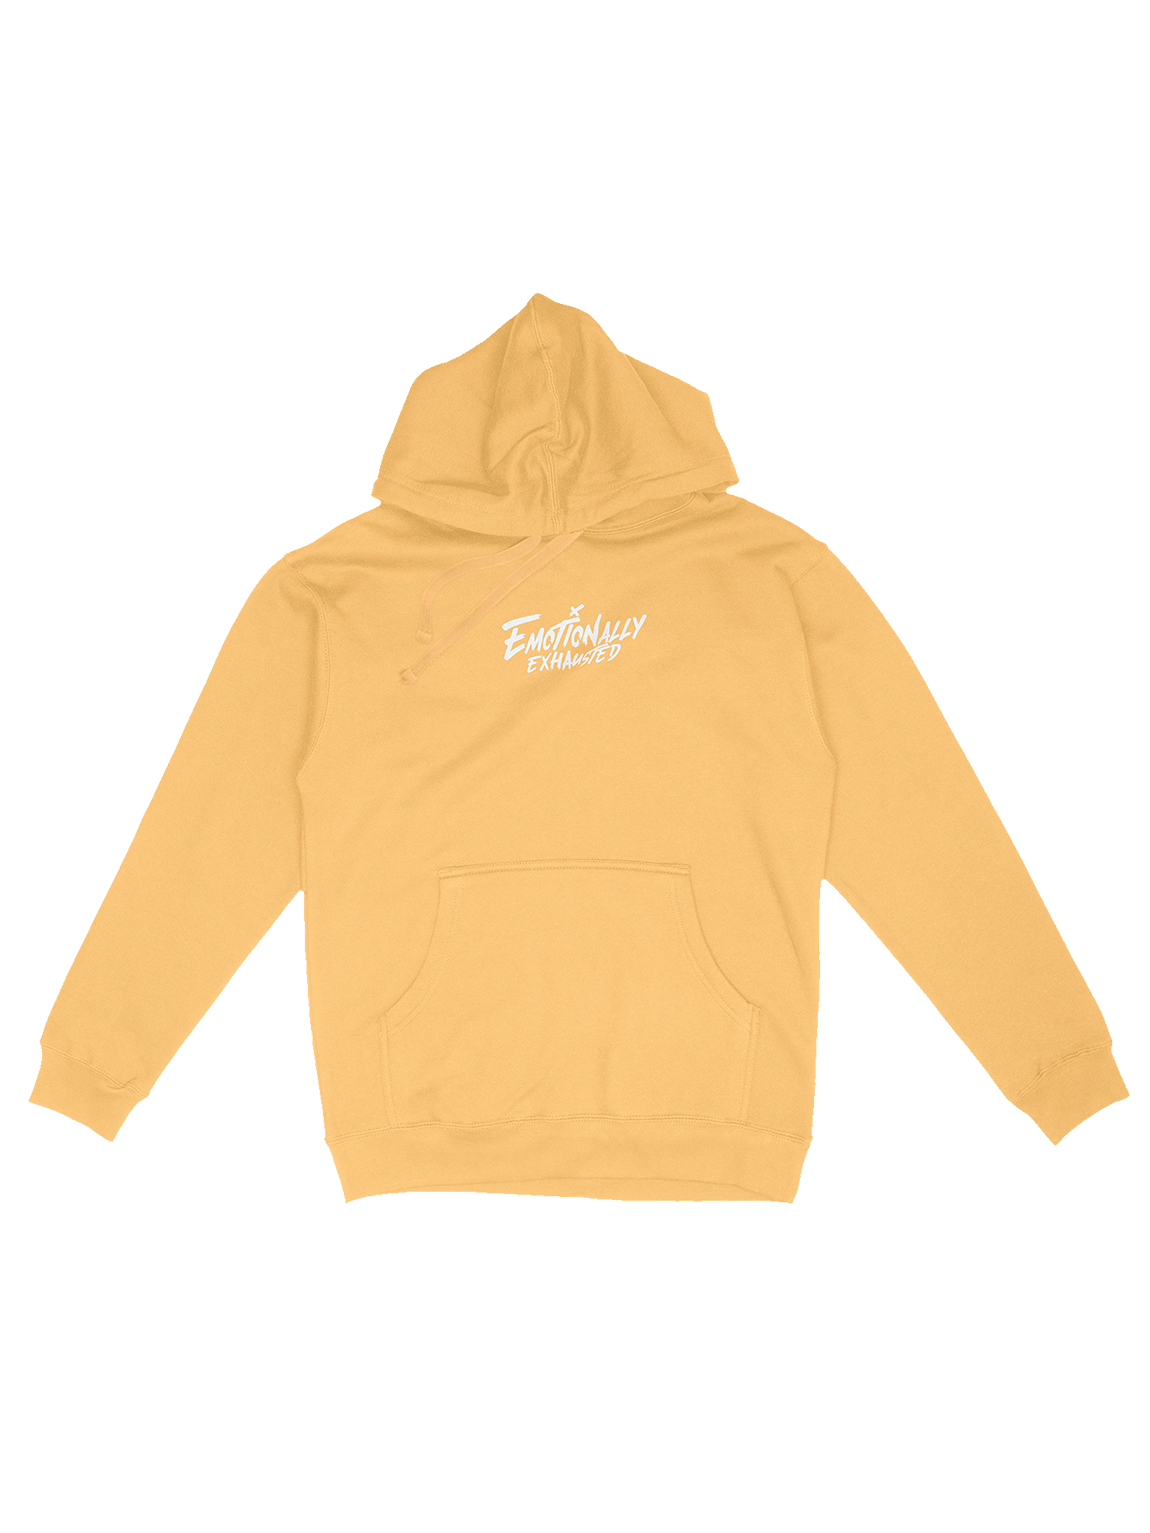 EMOTIONALLY EXHAUSTED PEACH PASTEL HOODIE product image (1)